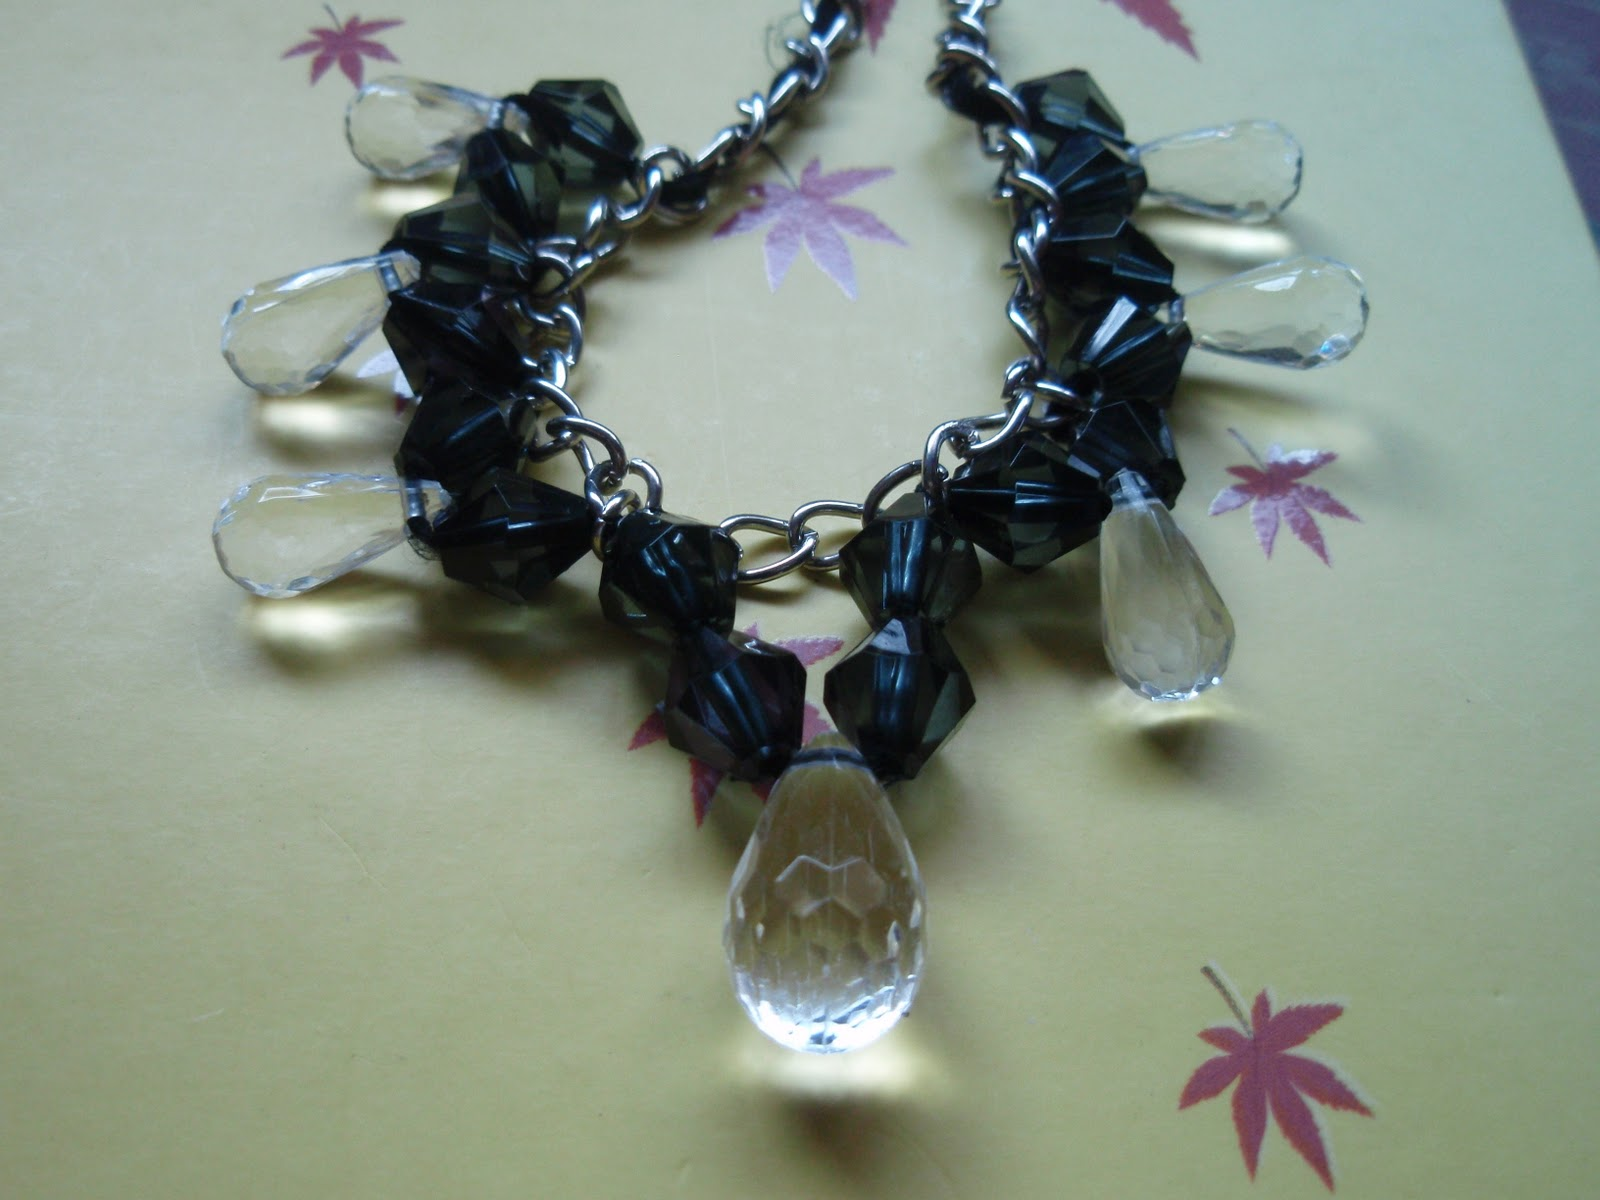 Crystal Handicraft/ Swarovski - Jewellery & Accessories